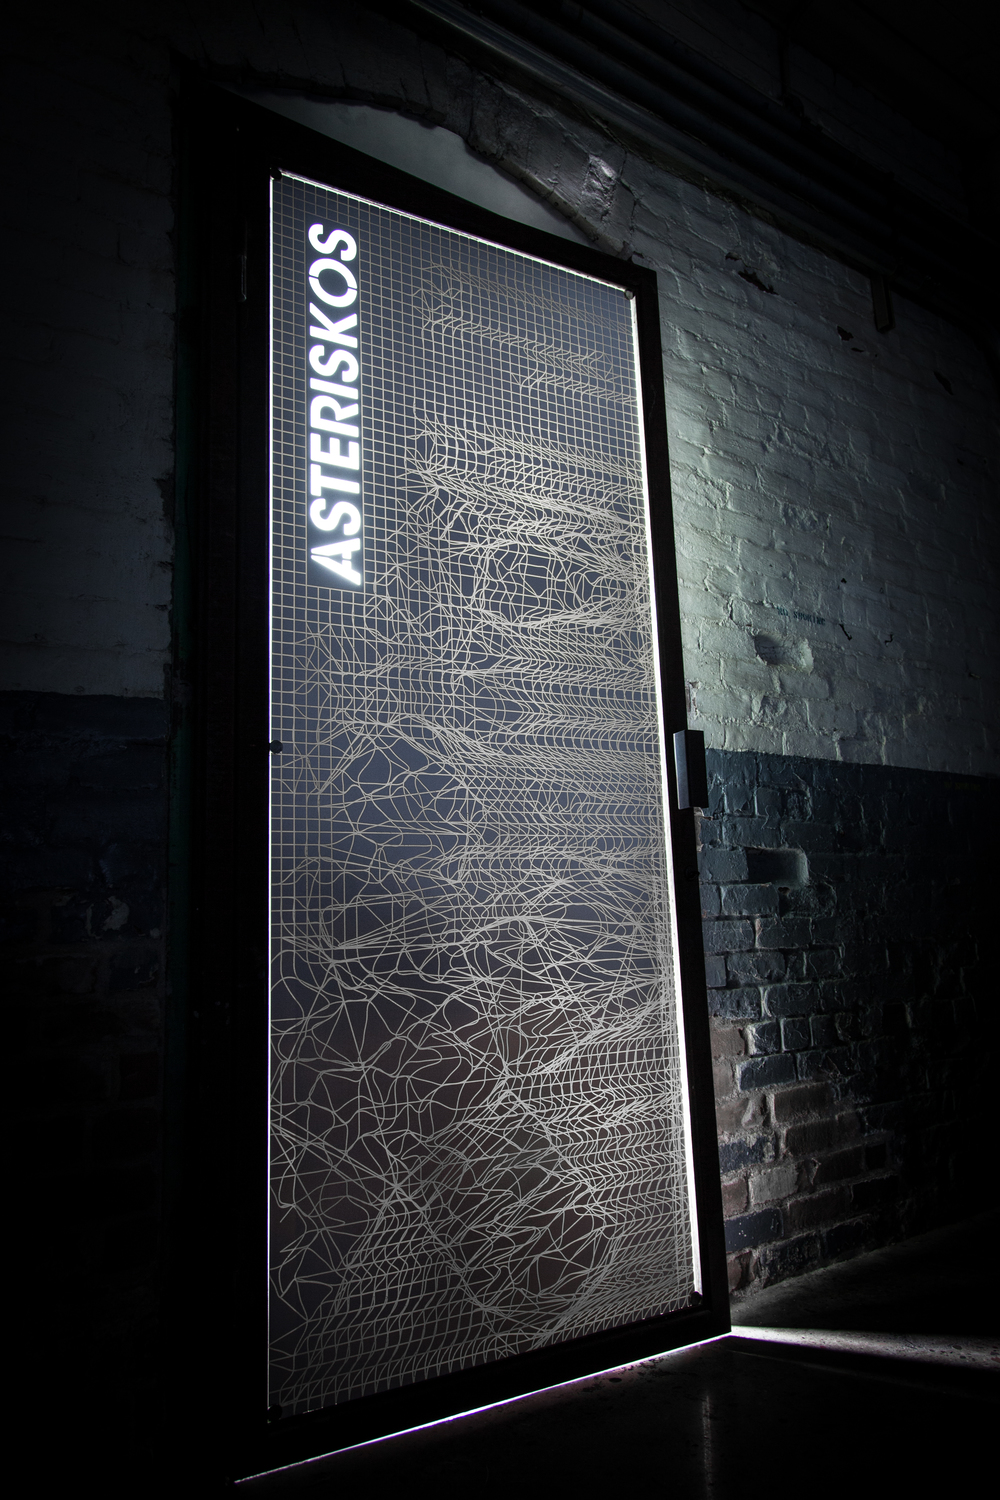 asteriskos-digital-fabrication-diffusion-panel-scripting1.jpg